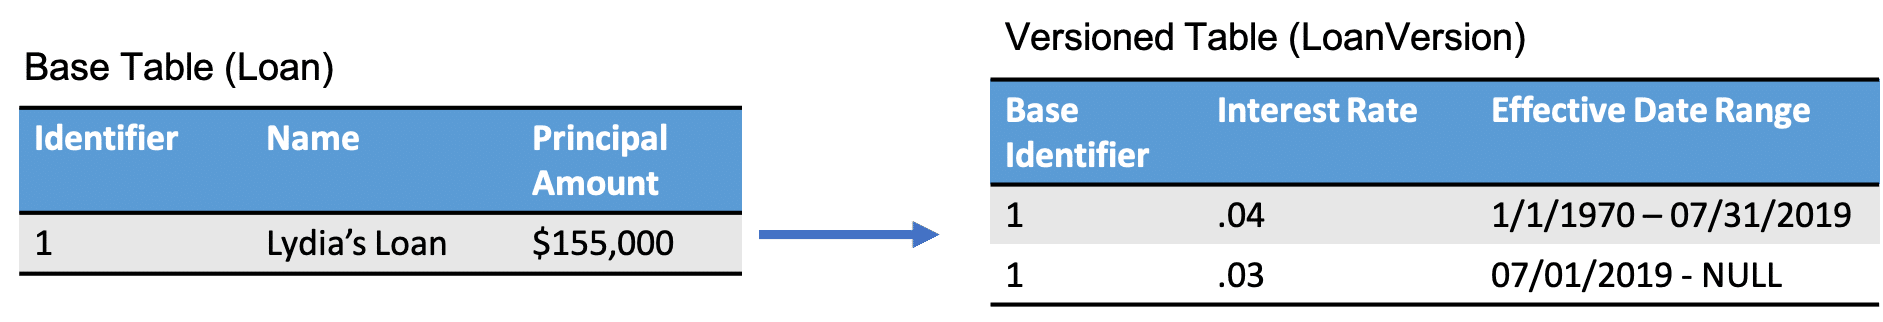 Versioned Records – Part 3: Prevent Overlapping Ranges with Database-Level Exclusion Constraints